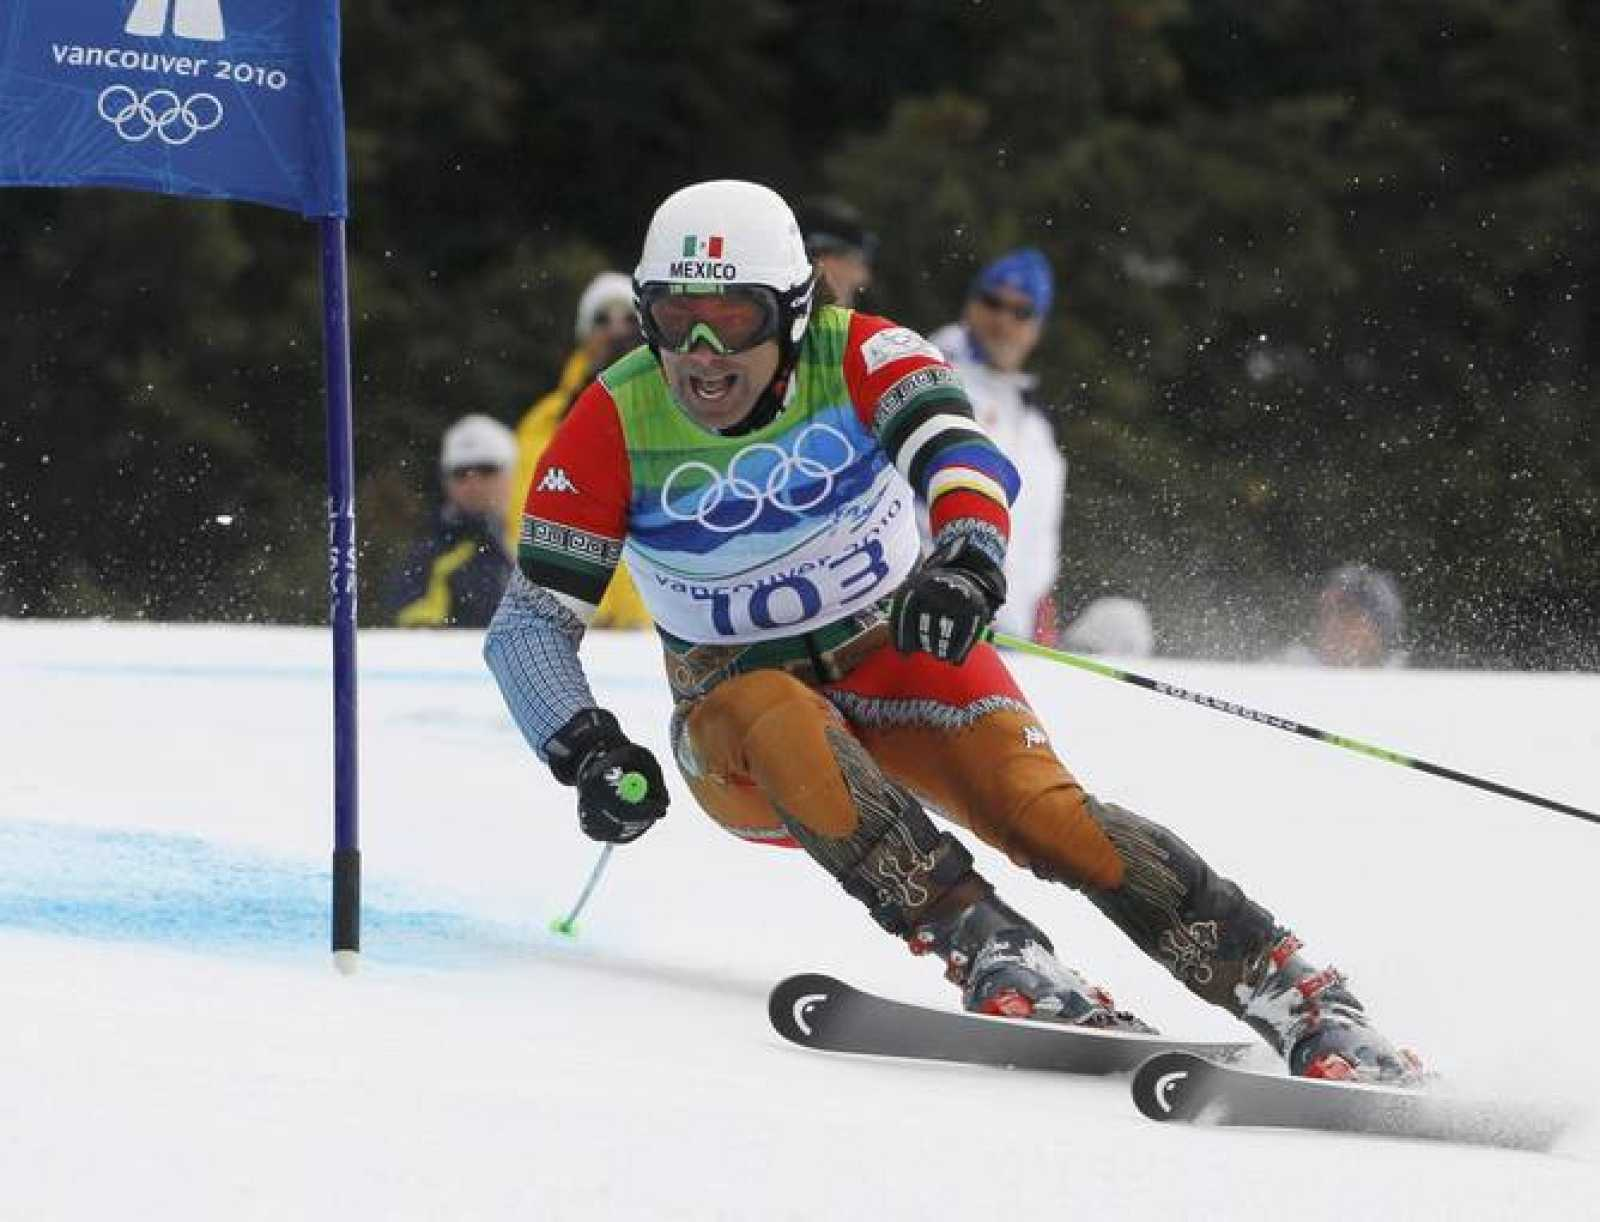 Mexico's Von Hohenlohe clears a gate during the first run of the men's alpine skiing giant slalom event at the Vancouver 2010 Winter Olympics in Whistler